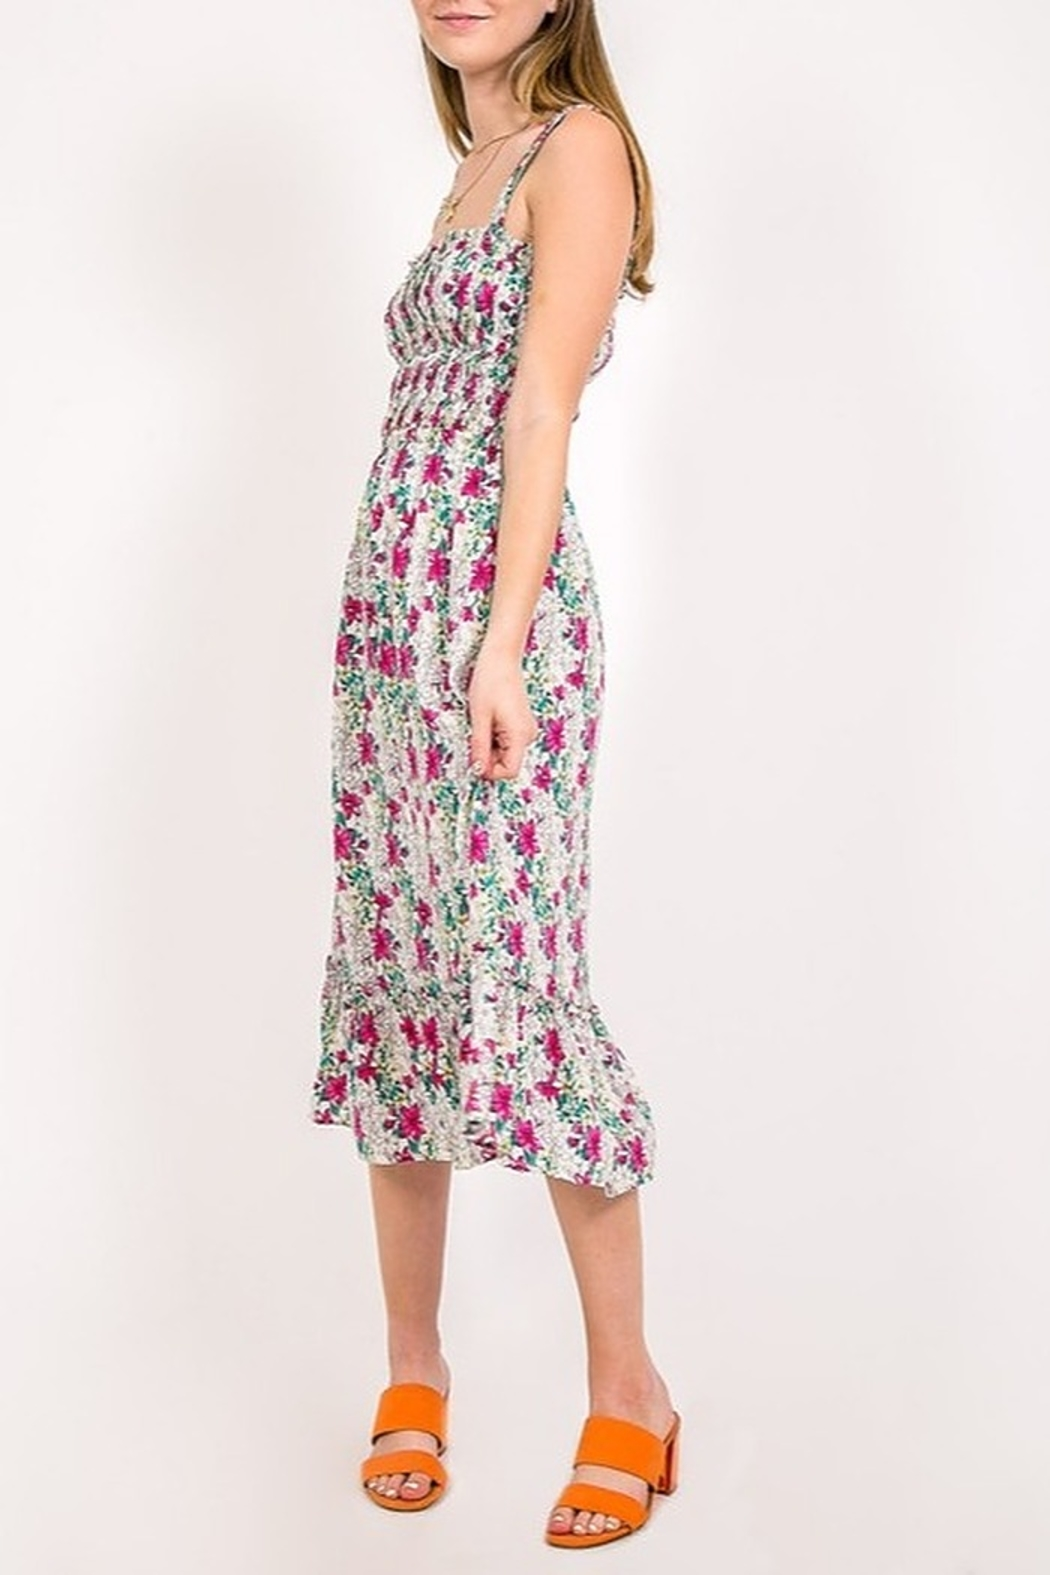 Very J Floral Print Midi Dress - Front Full Image